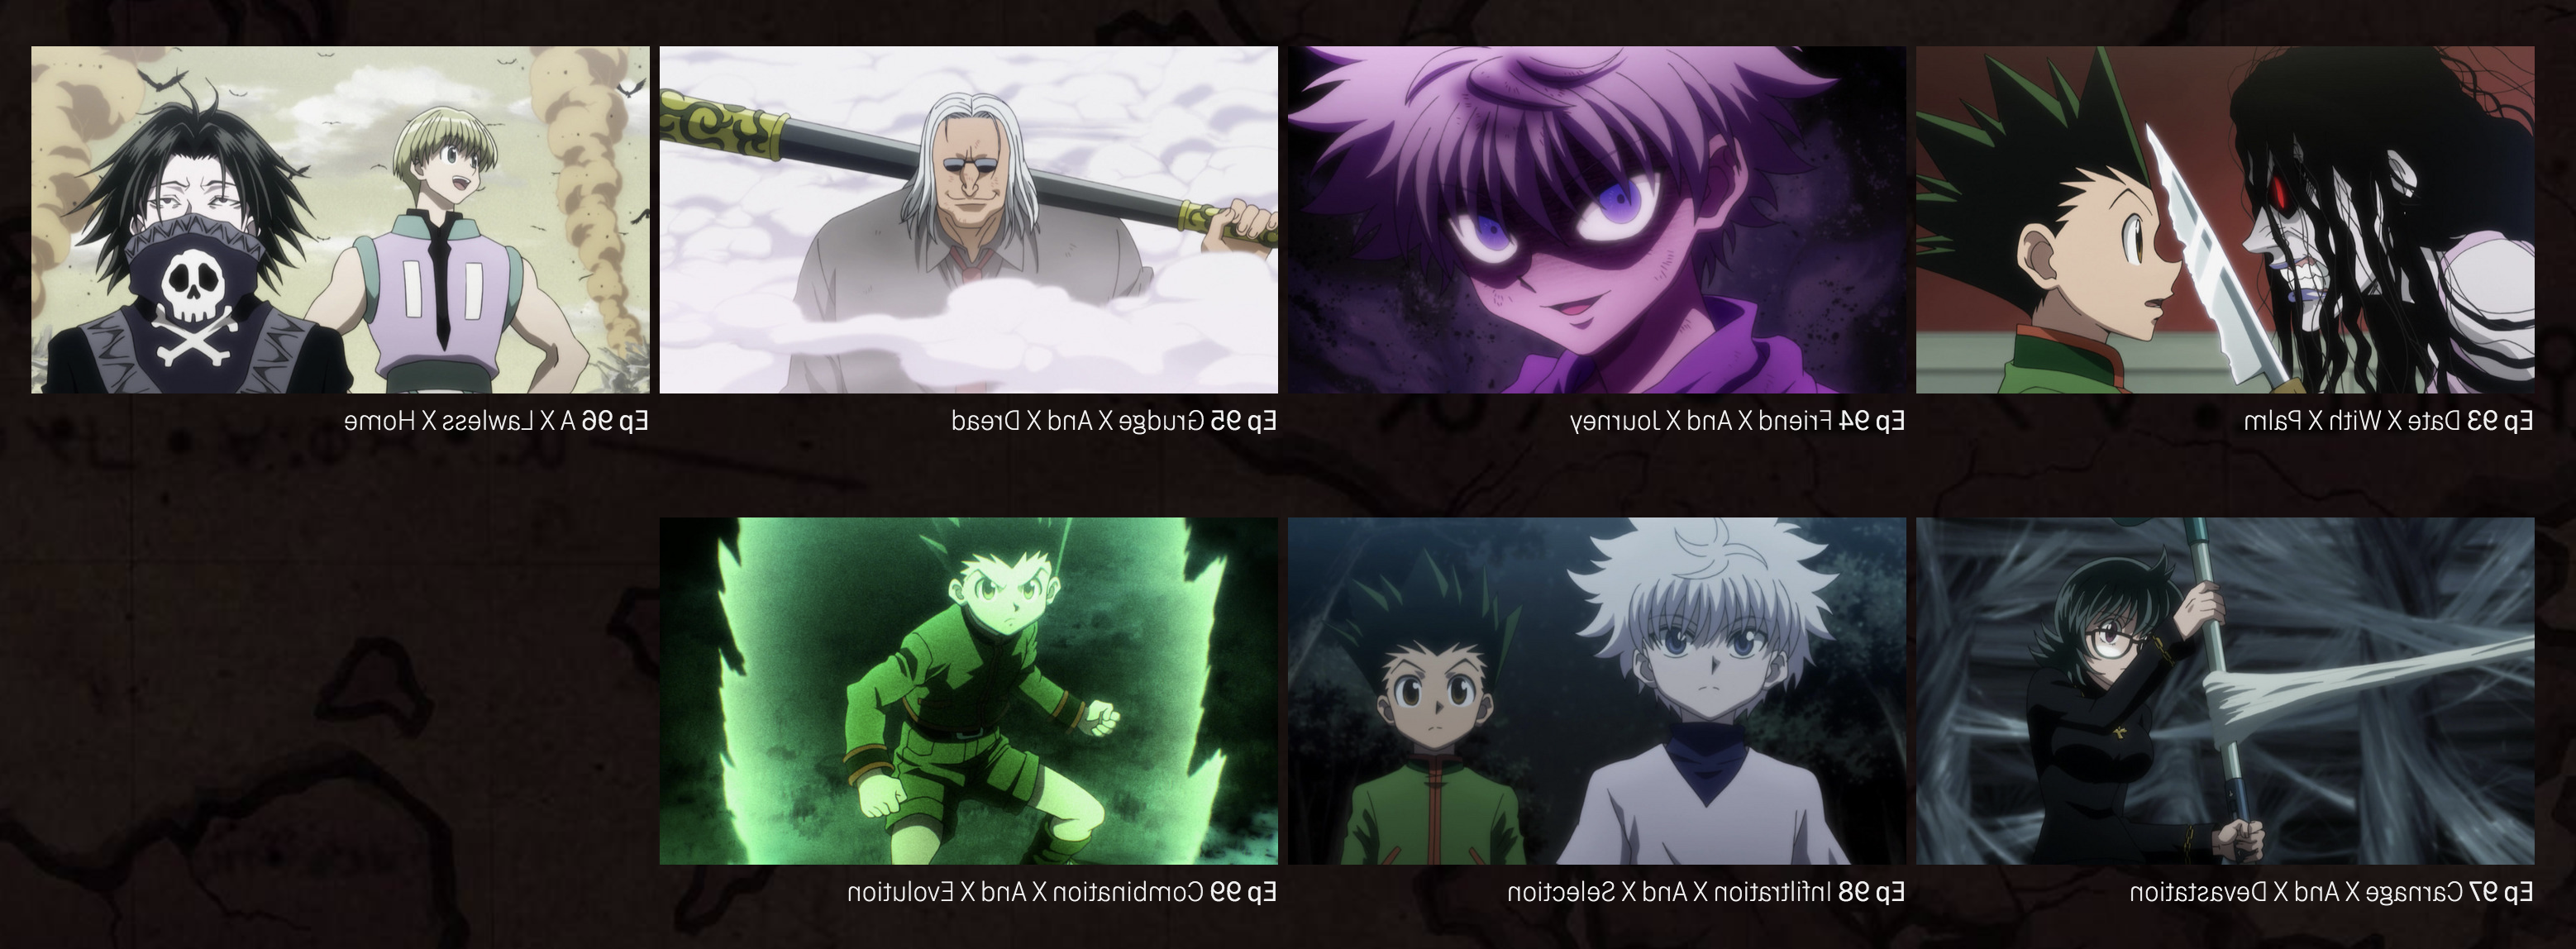 How many episodes of HXH are there?